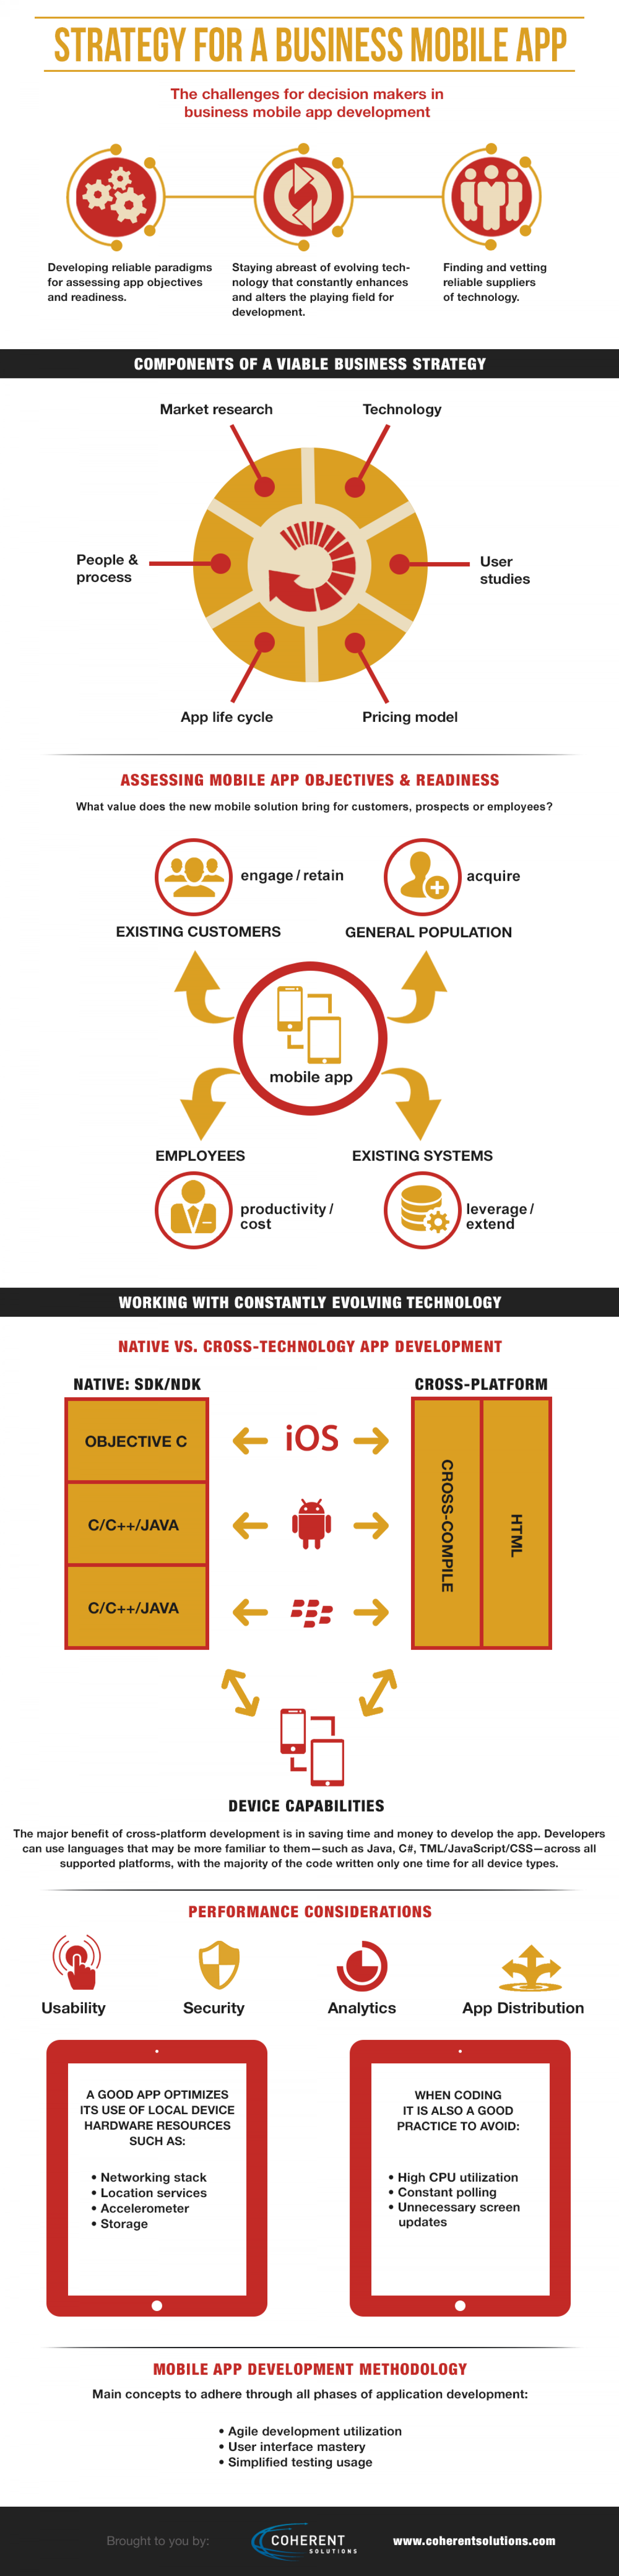 Strategy For A Business Mobile App Infographic